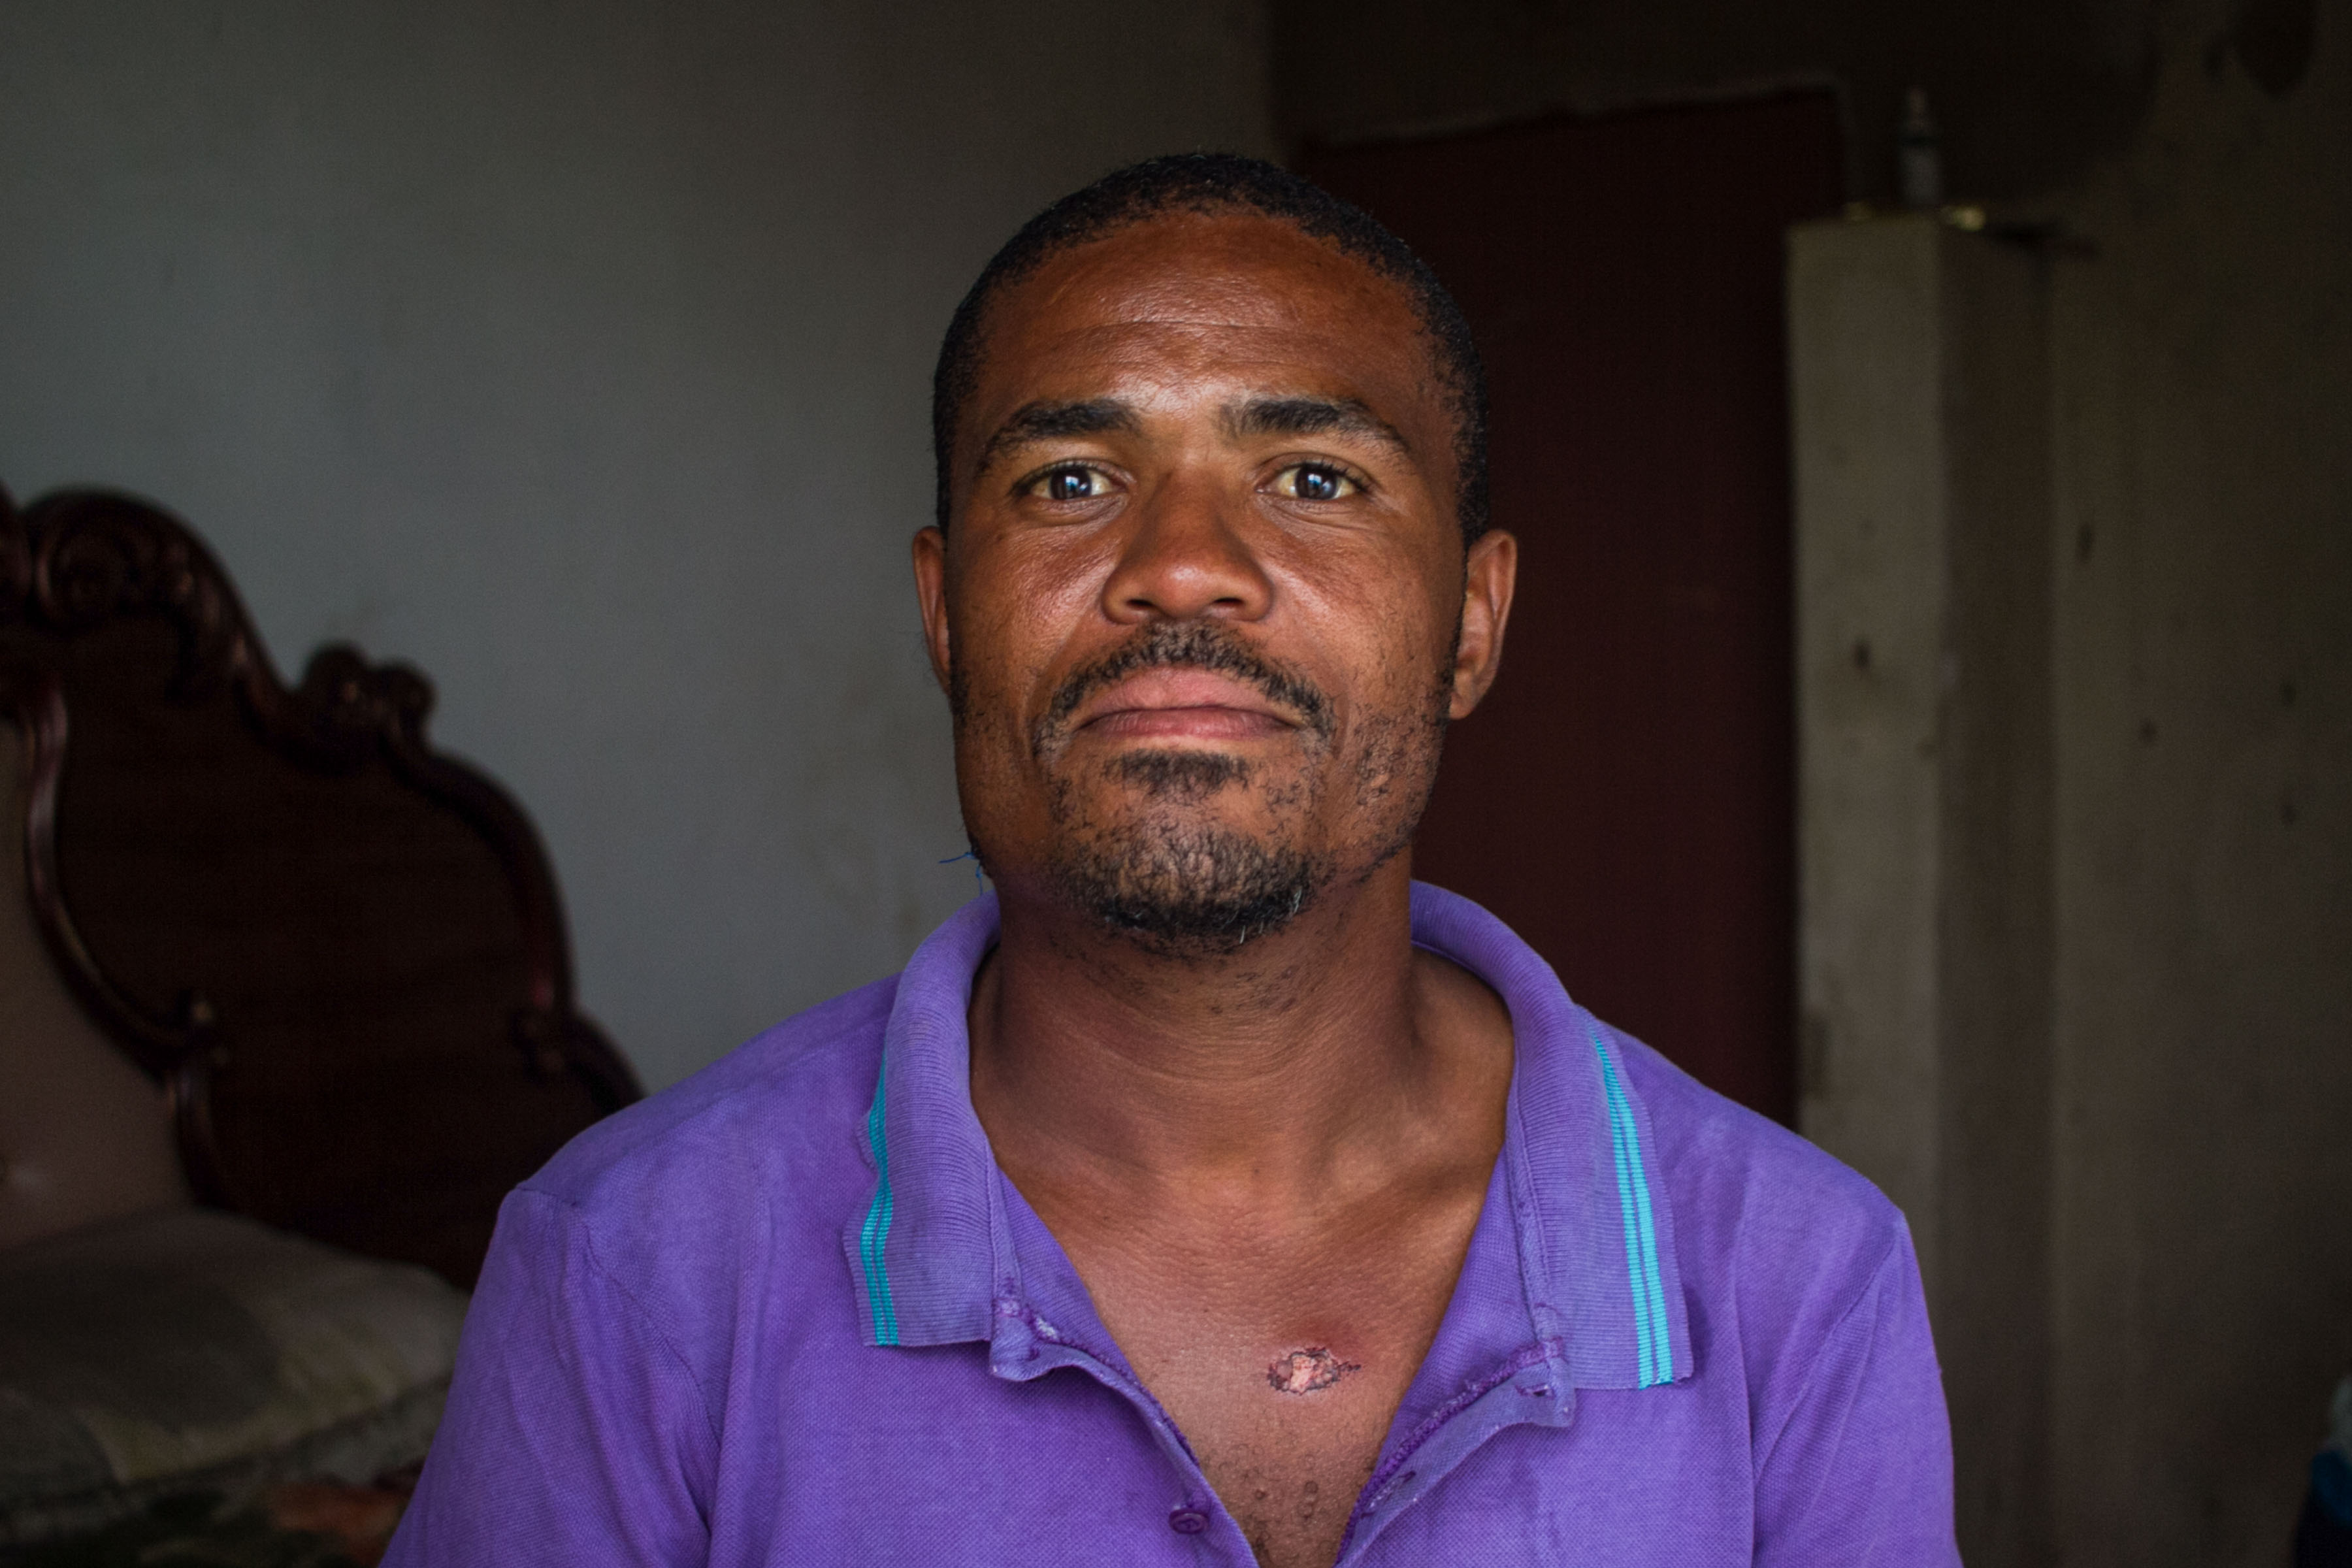 4 December 2019: Horizon Chrome electrician William Ndaba was sitting under a tree when the security guards opened fire on him, leaving a rubber bullet embedded under his chin.